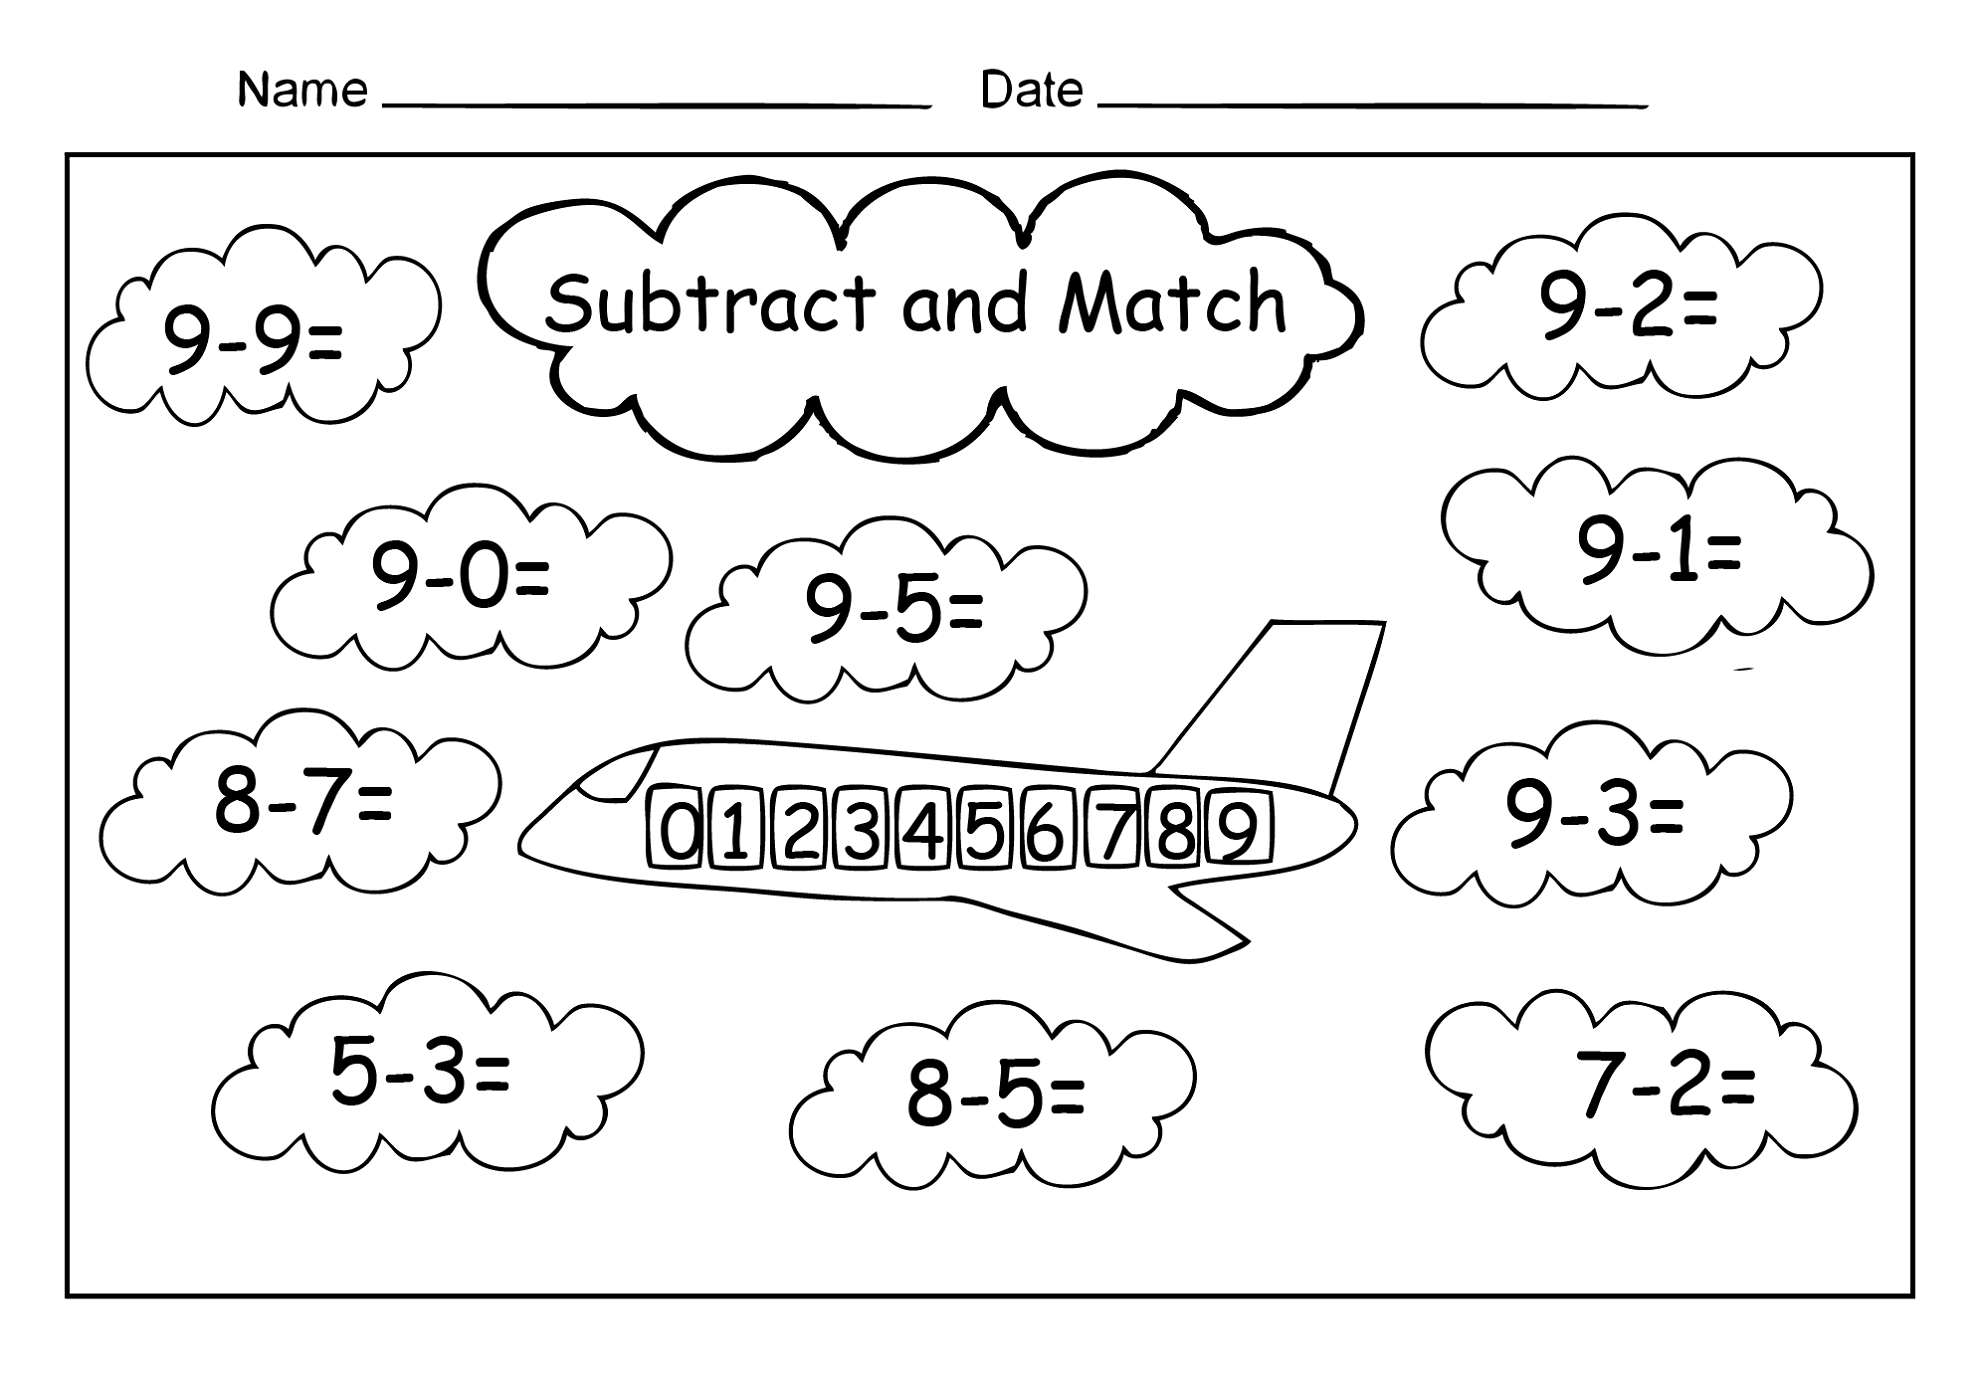 worksheets for grade 1 fun april fun filled learning first grade phonics compound fun 1 for grade worksheets